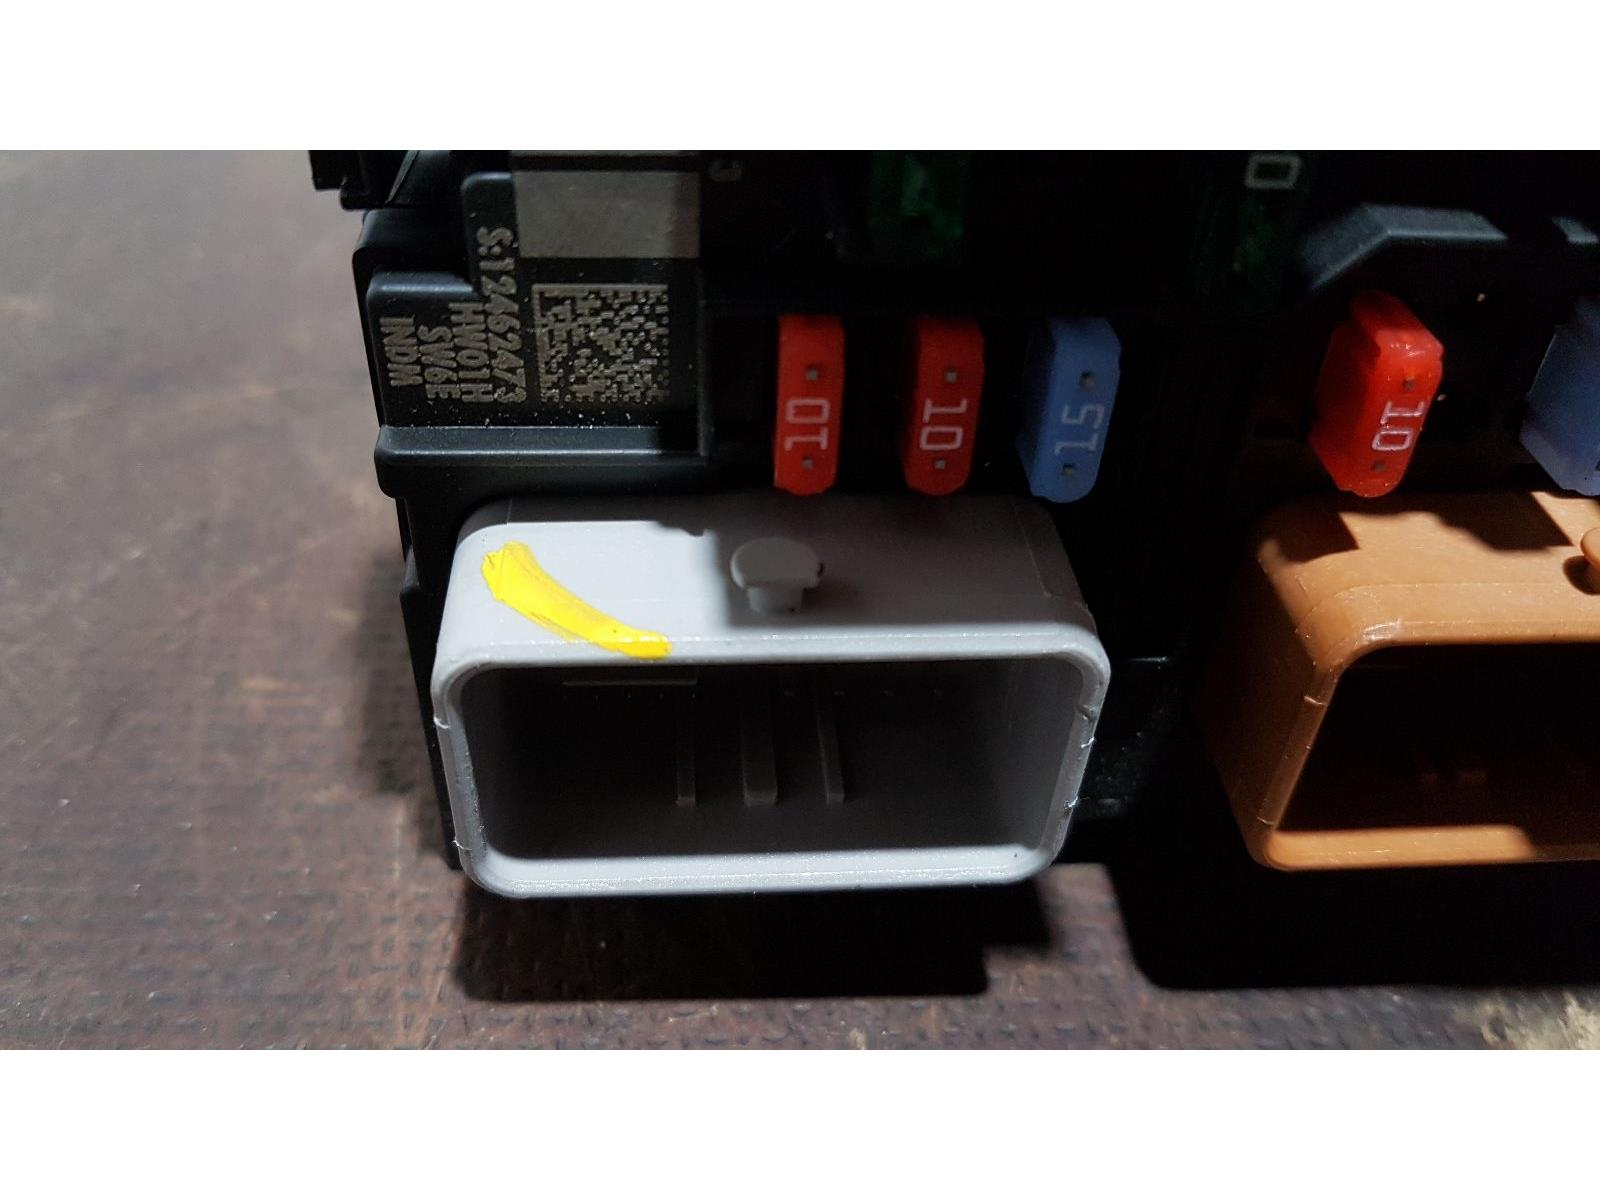 Peugeot 207 2006 To 2009 Sport HDi Fuse and Relay Box 1 used and